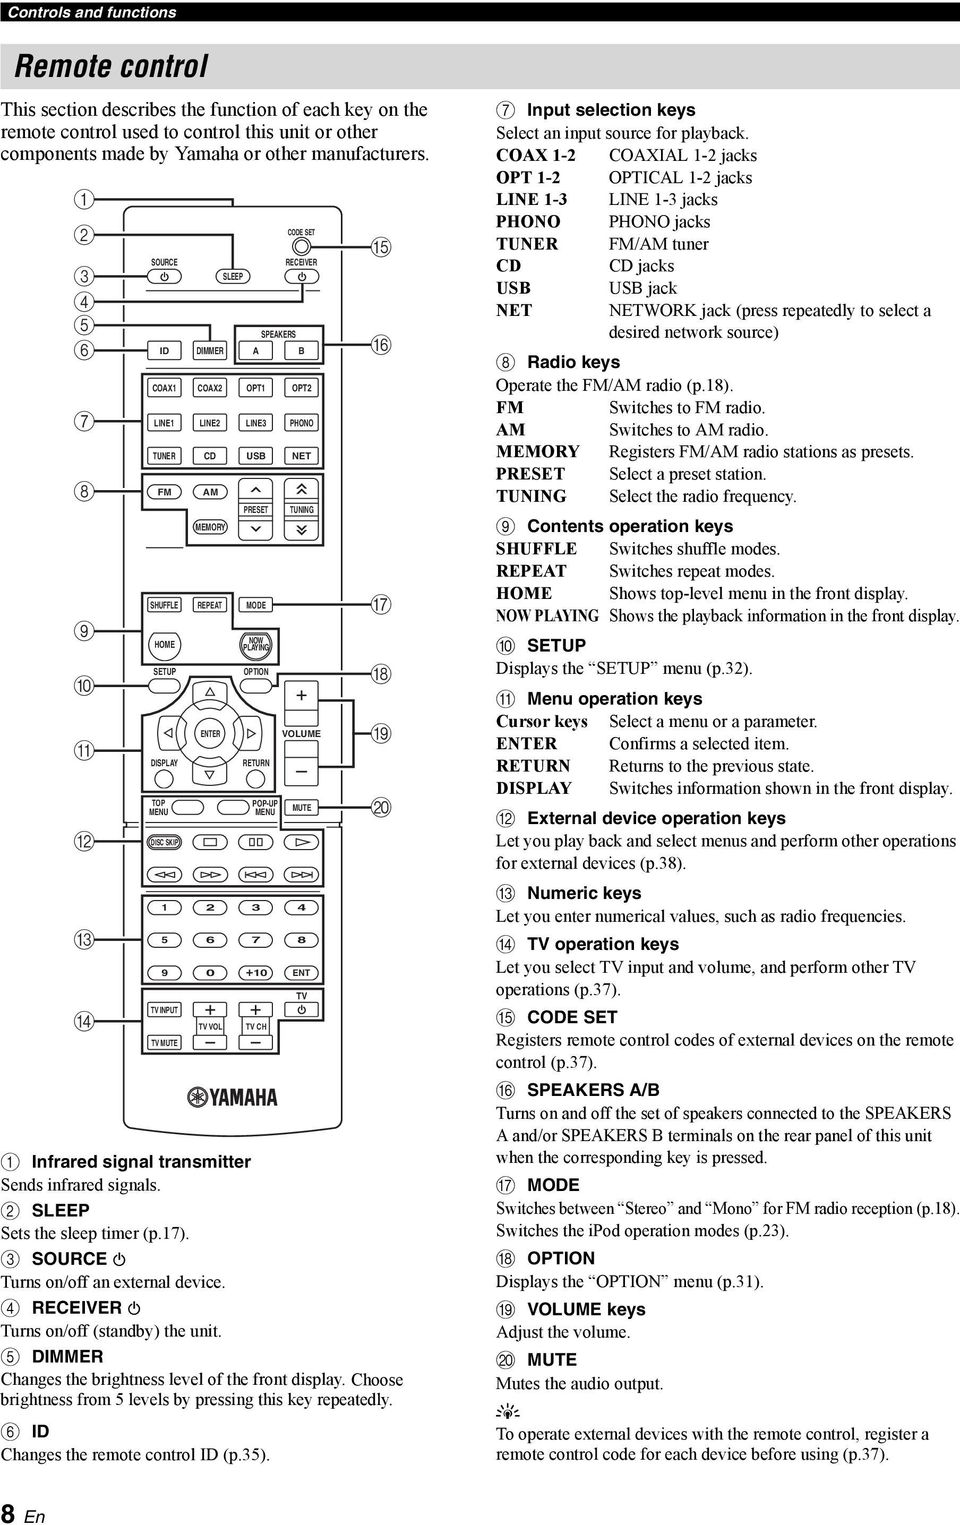 4 RECEIVER A Turns on/off (standb) the unit. 5 DIMMER Changes the brightness level of the front displa. Choose brightness from 5 levels b pressing this ke repeatedl.